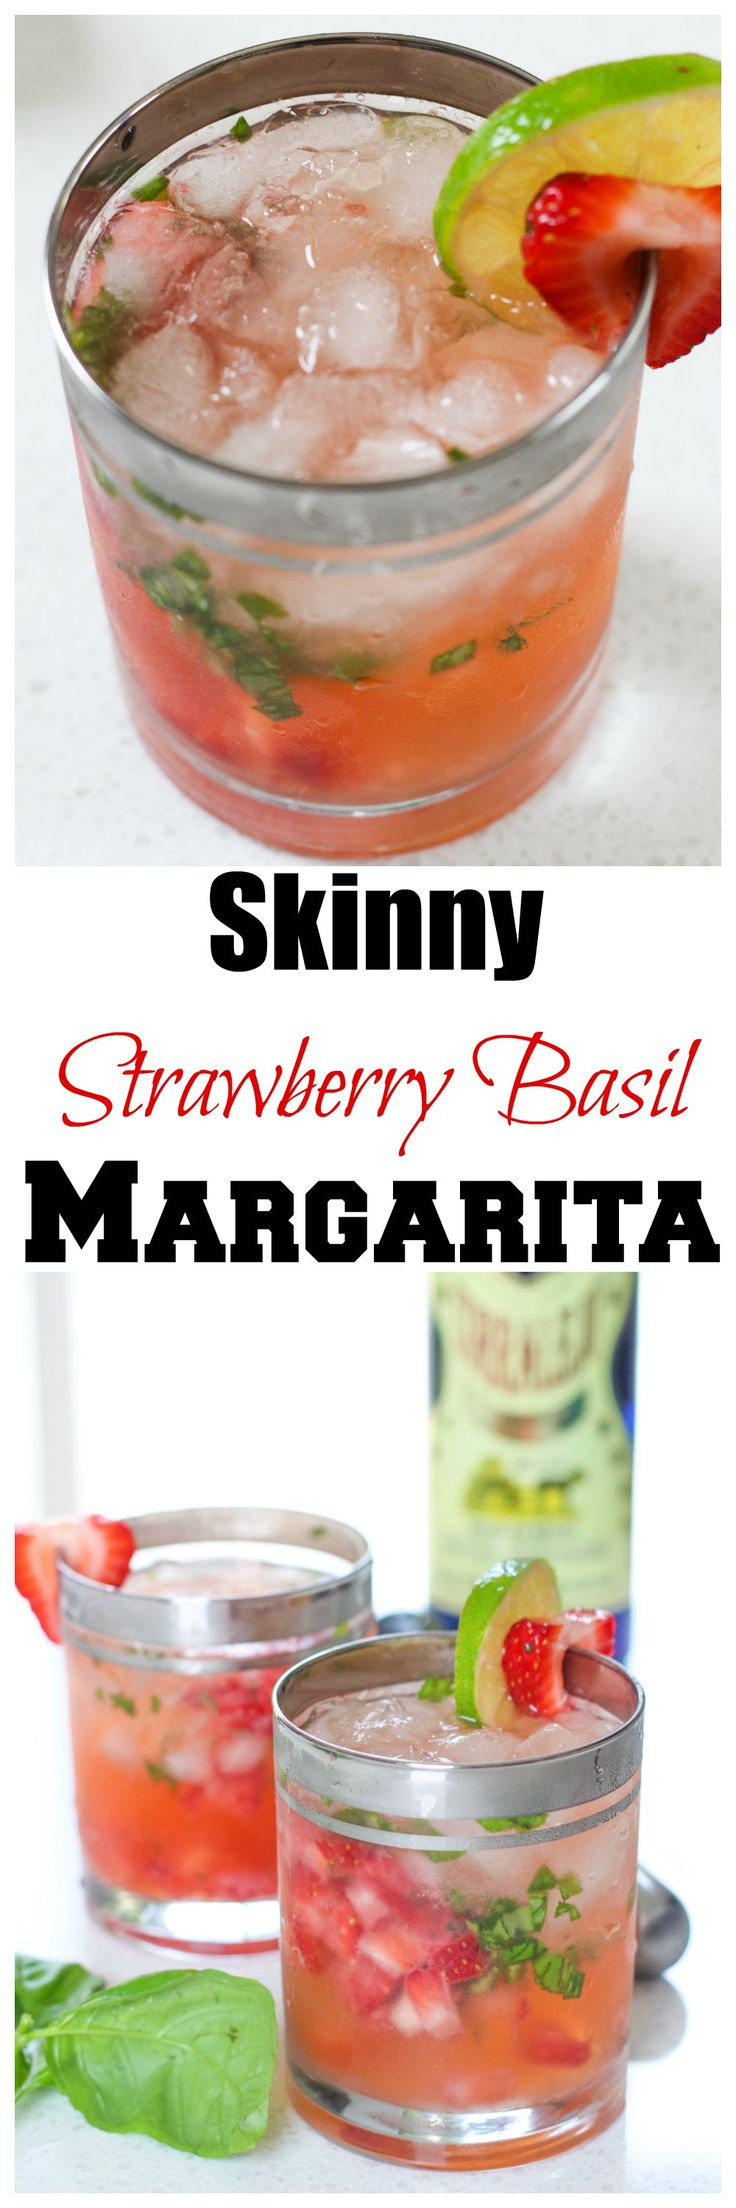 Skinny Strawberry Basil Margarita - A light, refreshing, cocktail that is only 130 calories!